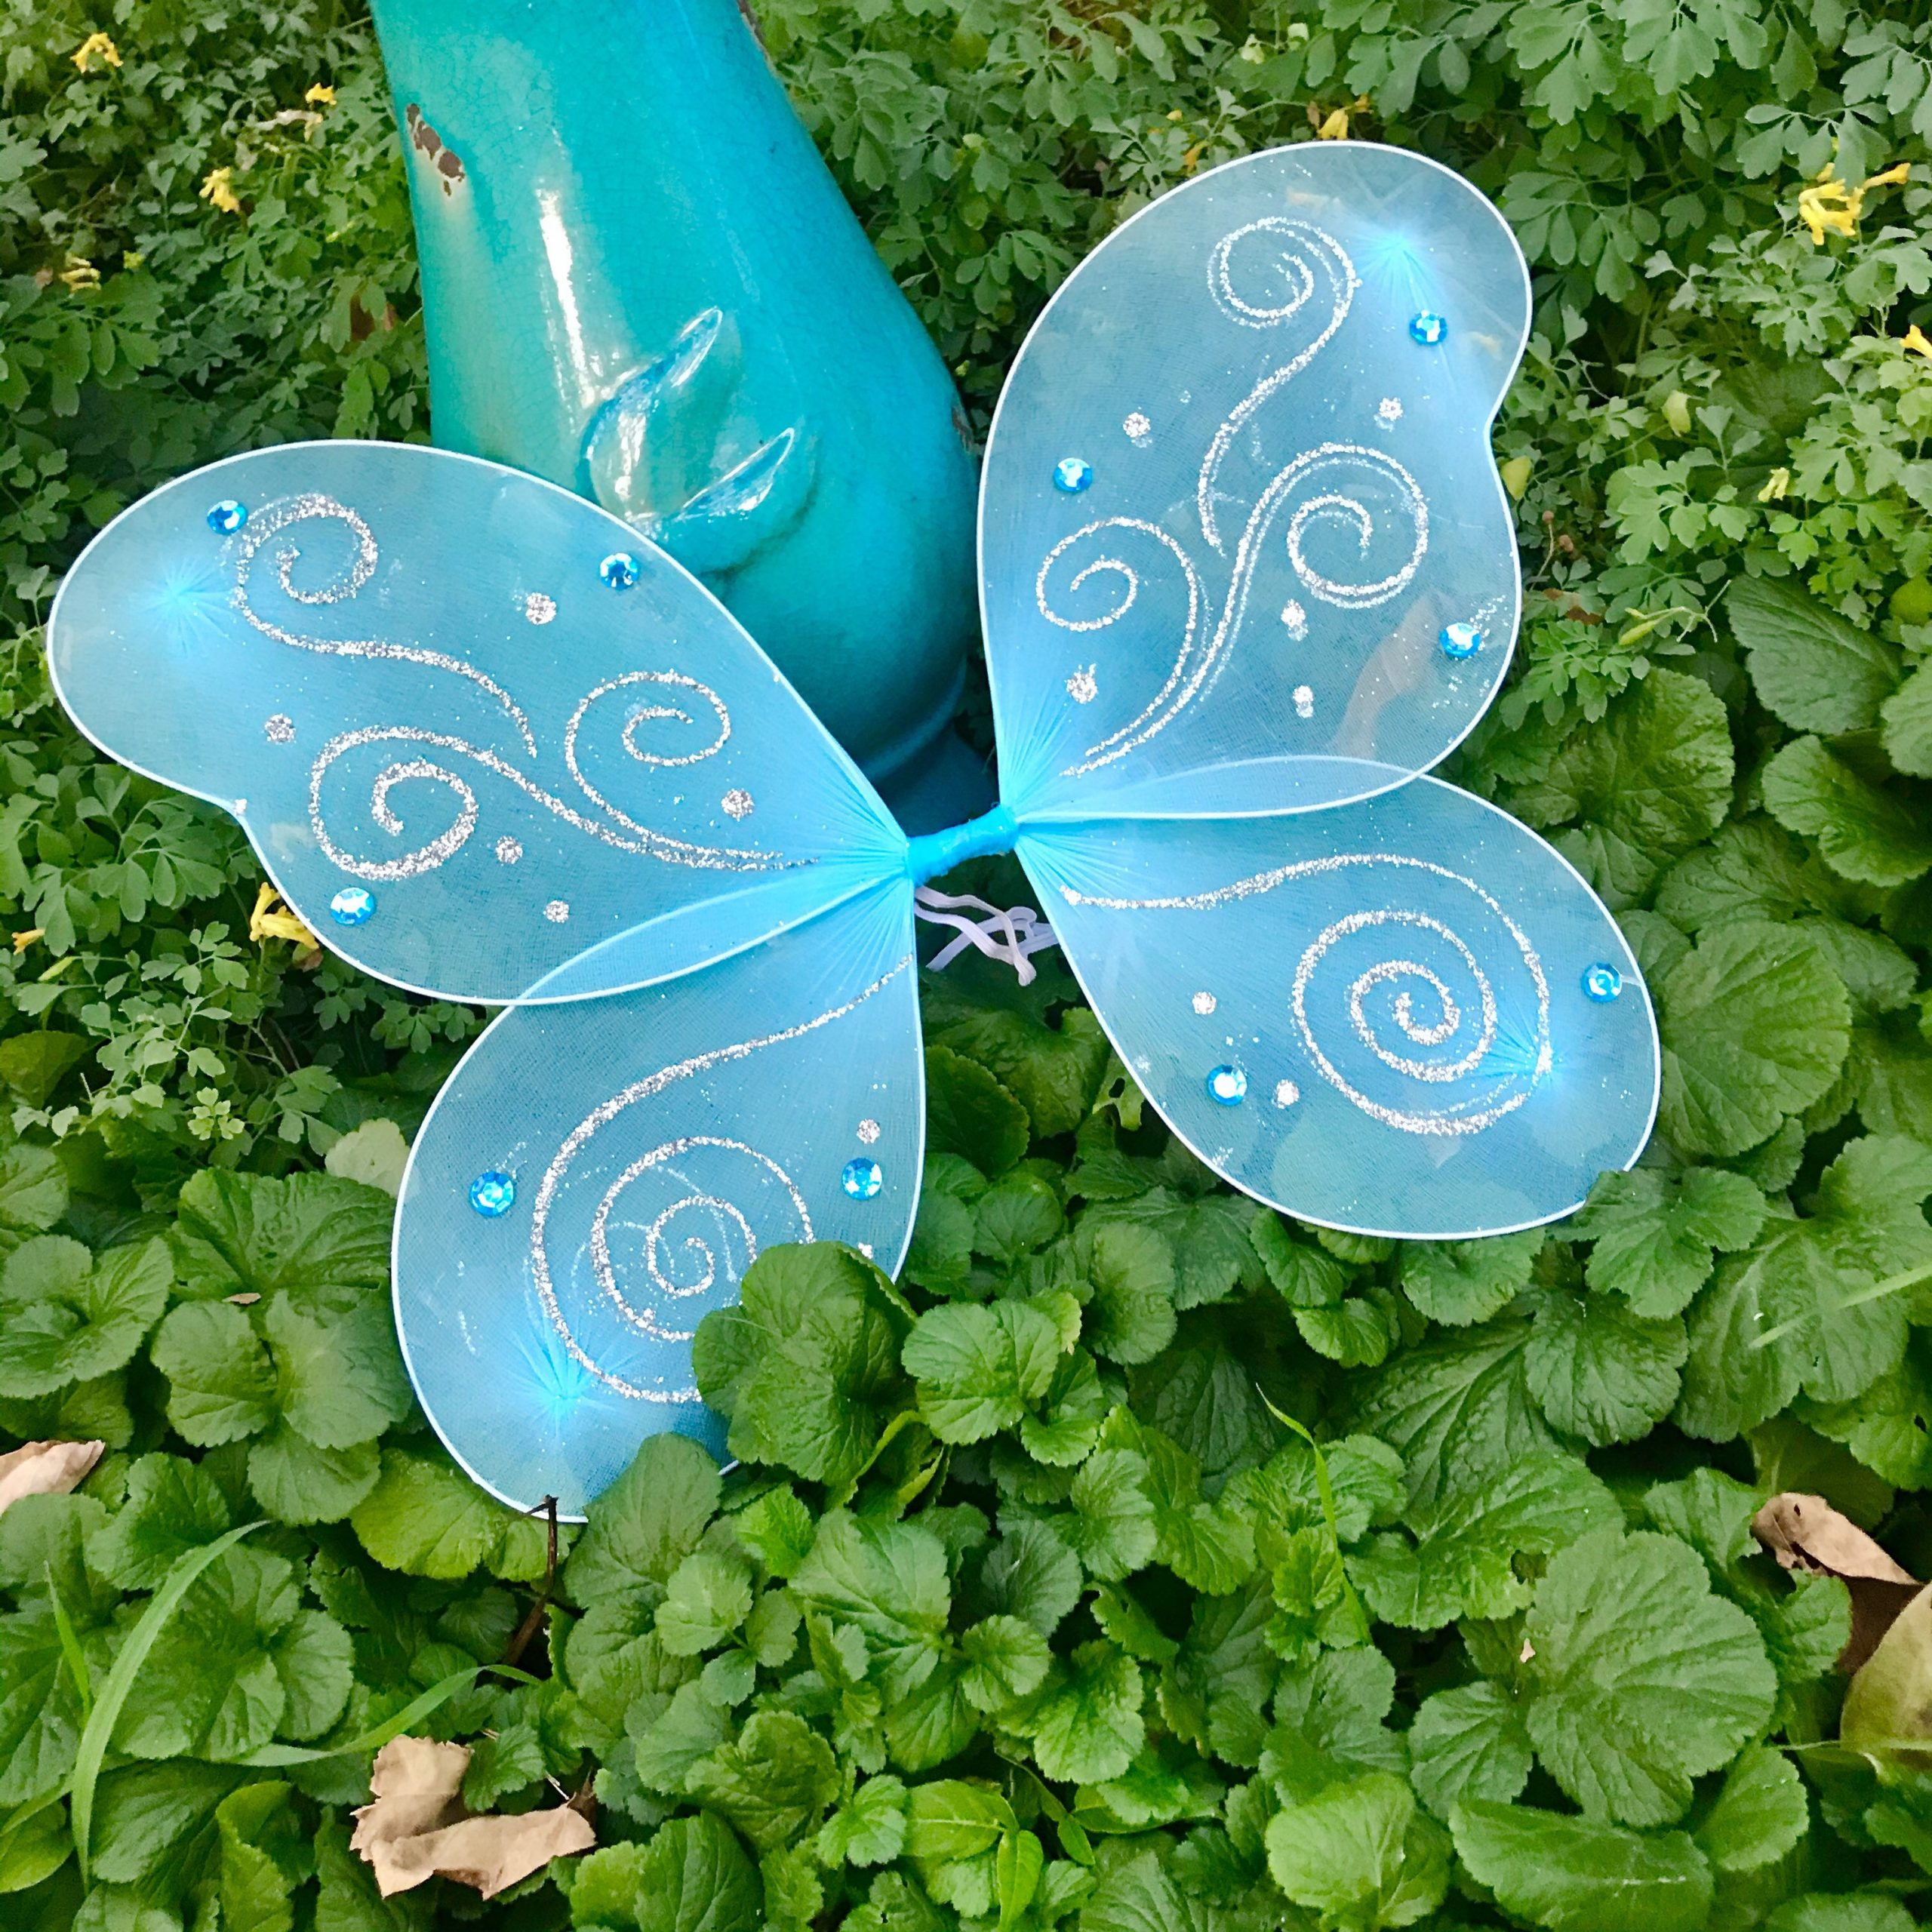 Blue Fairy Wings Halloween Costume Tinkerbell Pixie Baby Girl Toddler Child Kids Teen Adult Cosplay Ideas Birthday Gift Photo Shoot Prop Set